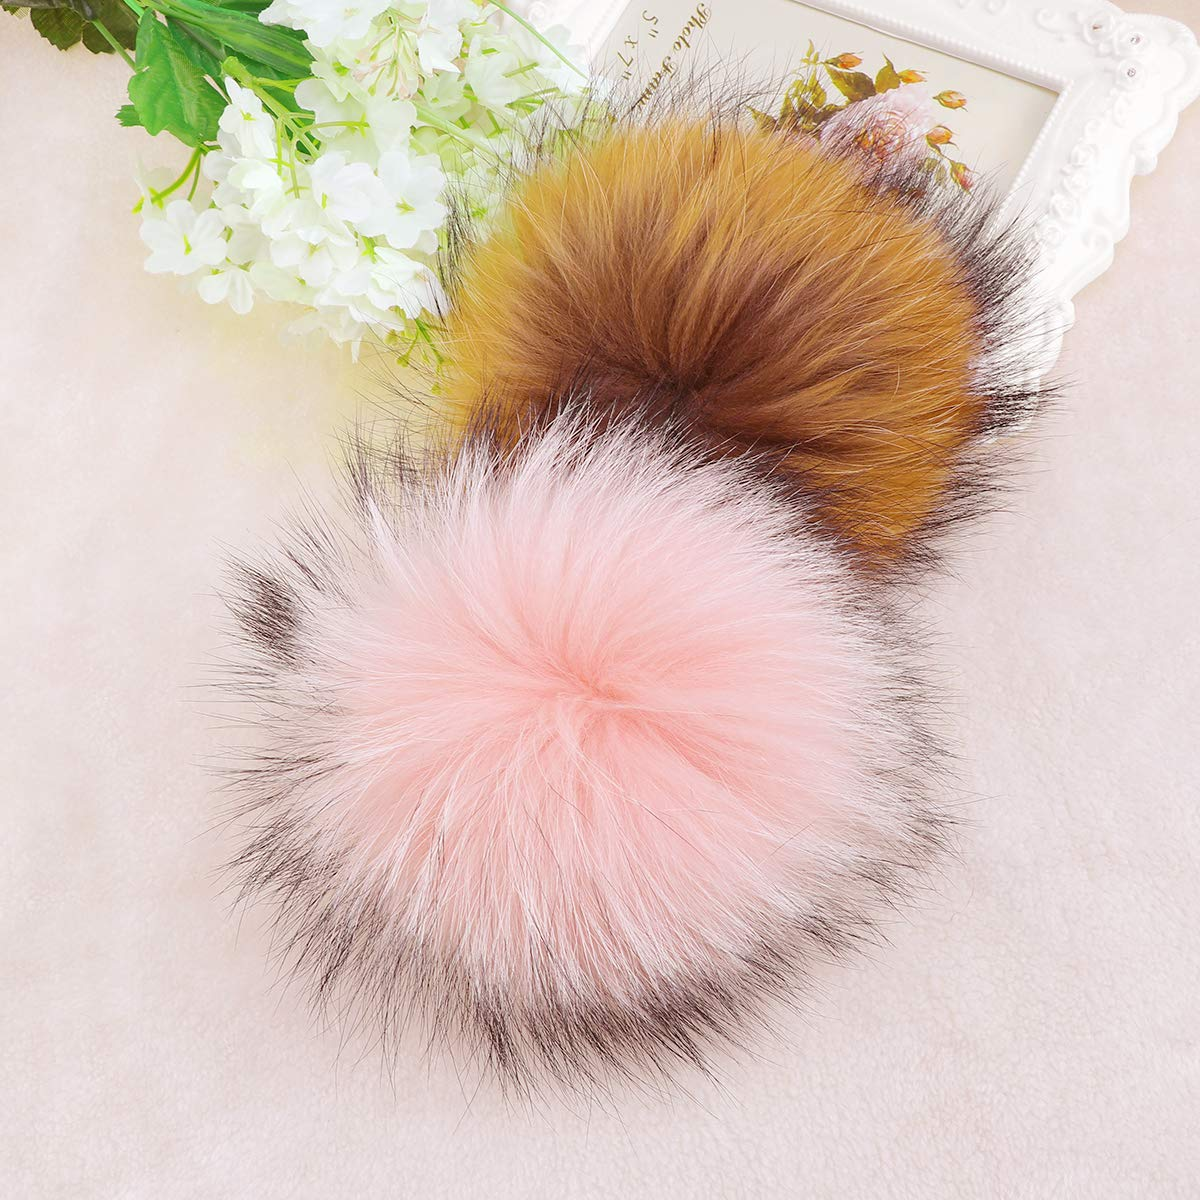 SUPVOX Faux Fur Fluffy Pompom with Snap Fastener DIY Knitting Accessories for Hats Beanies Shoes Scarves Bag Charms Black